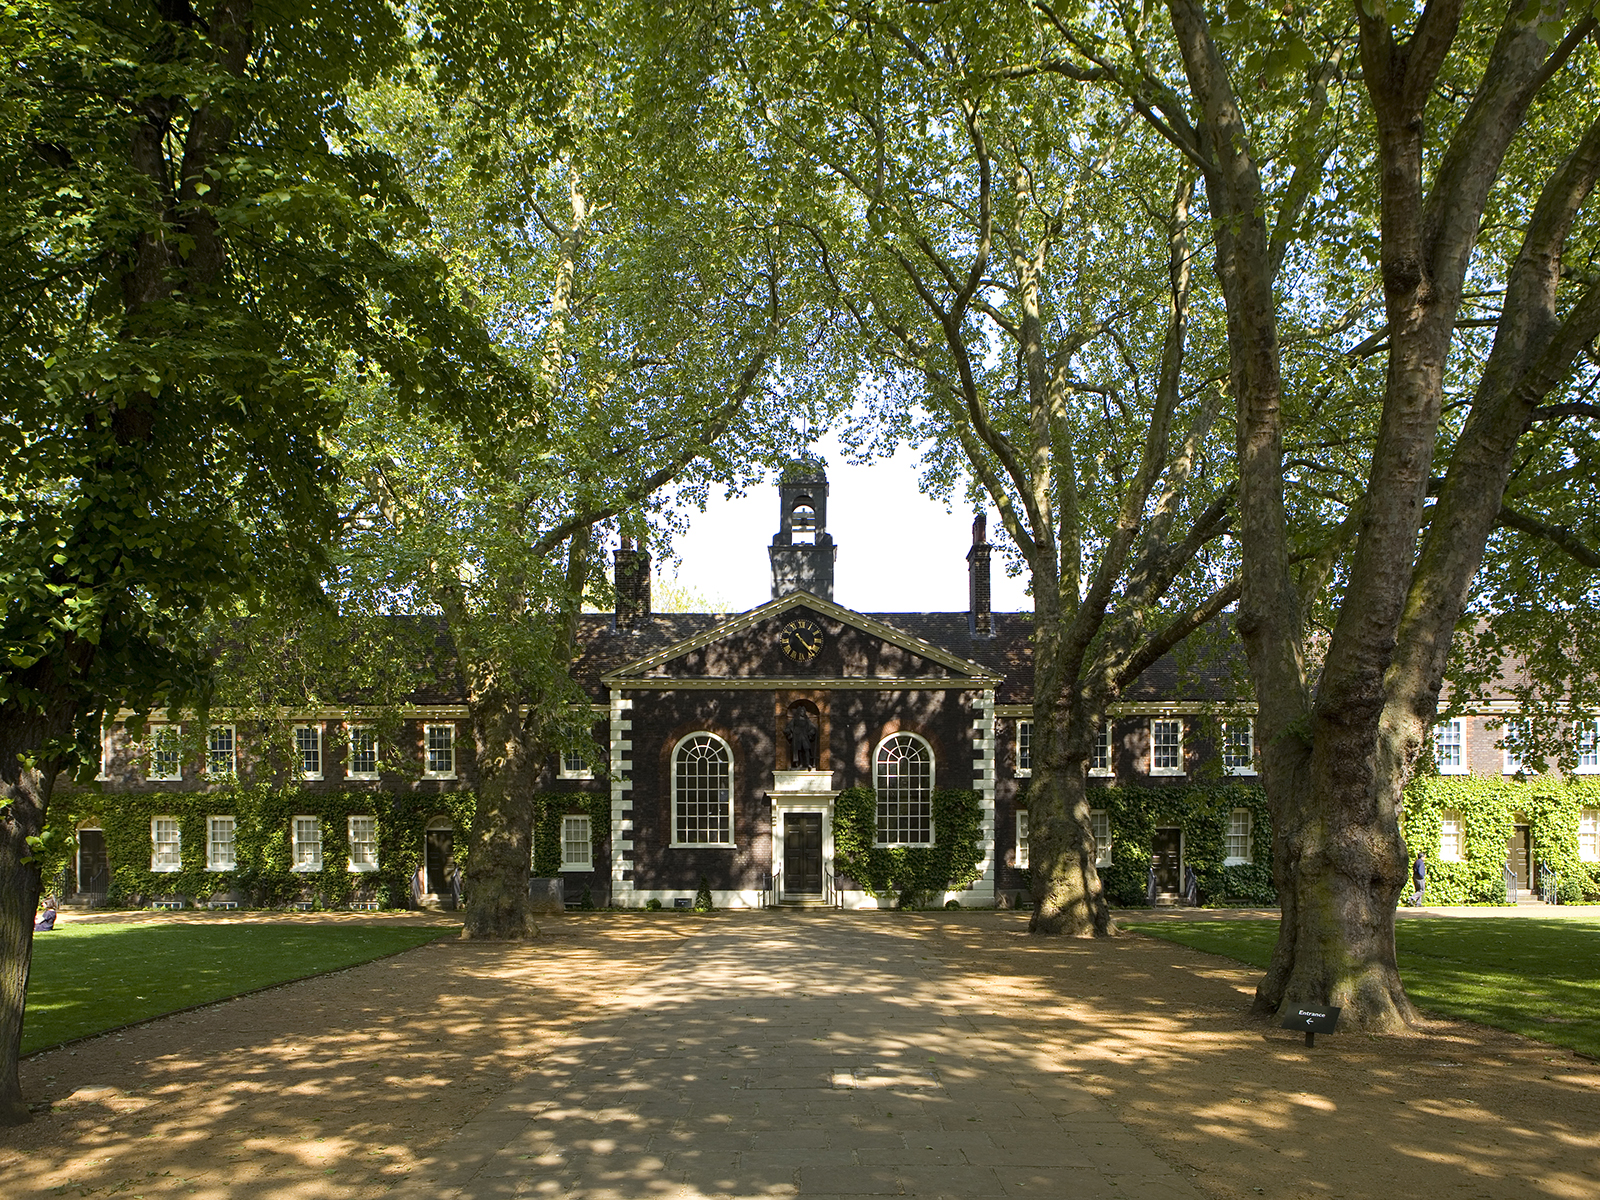 A wide-angle shot of the Geffrye Museum almshouses in the sunshine.